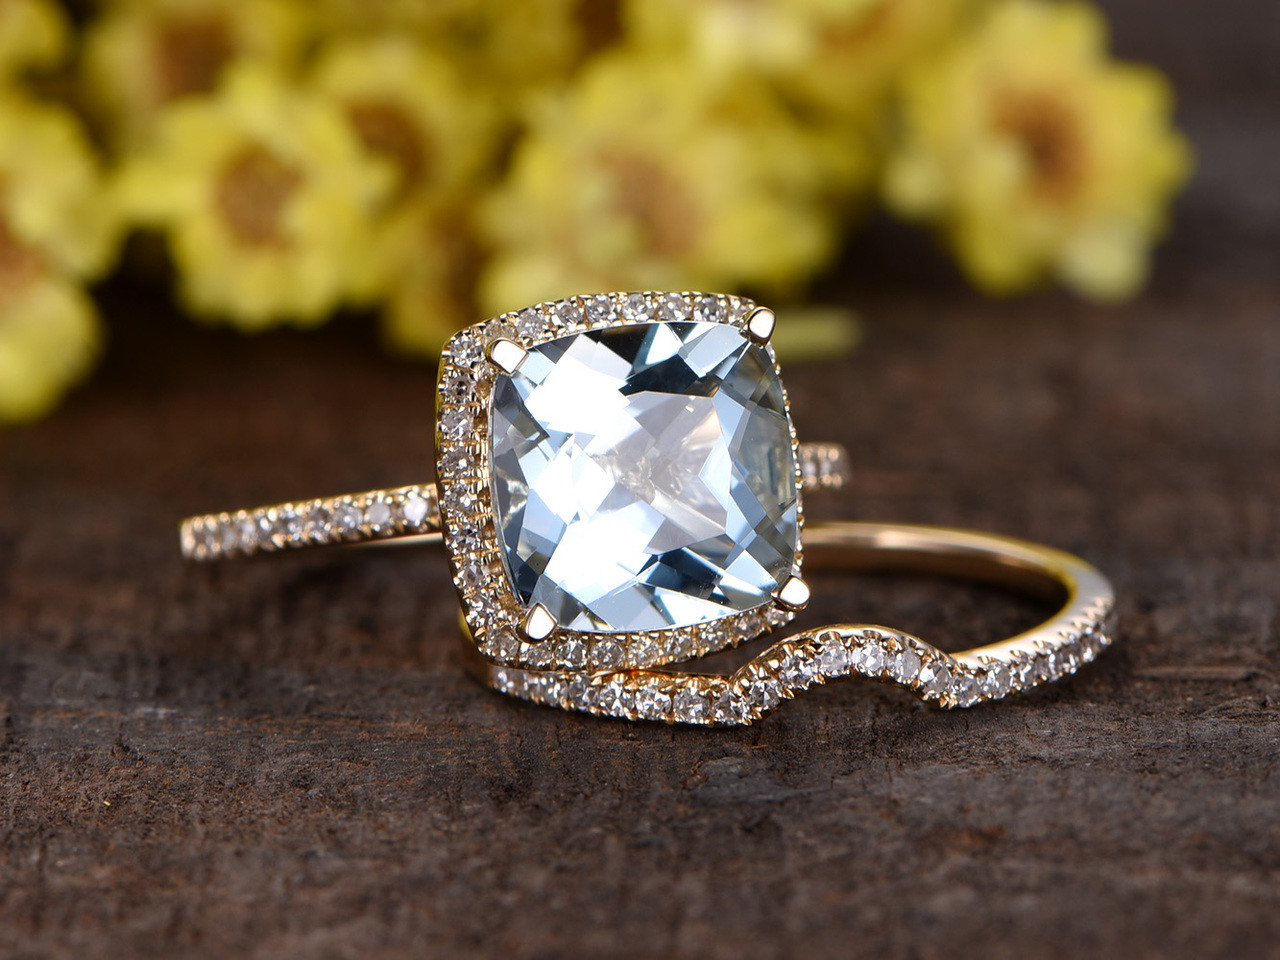 3 Carat Cushion Cut Aquamarine Bridal Set Diamond Wedding Ring 14k Yellow  Gold Thin Pave Curve